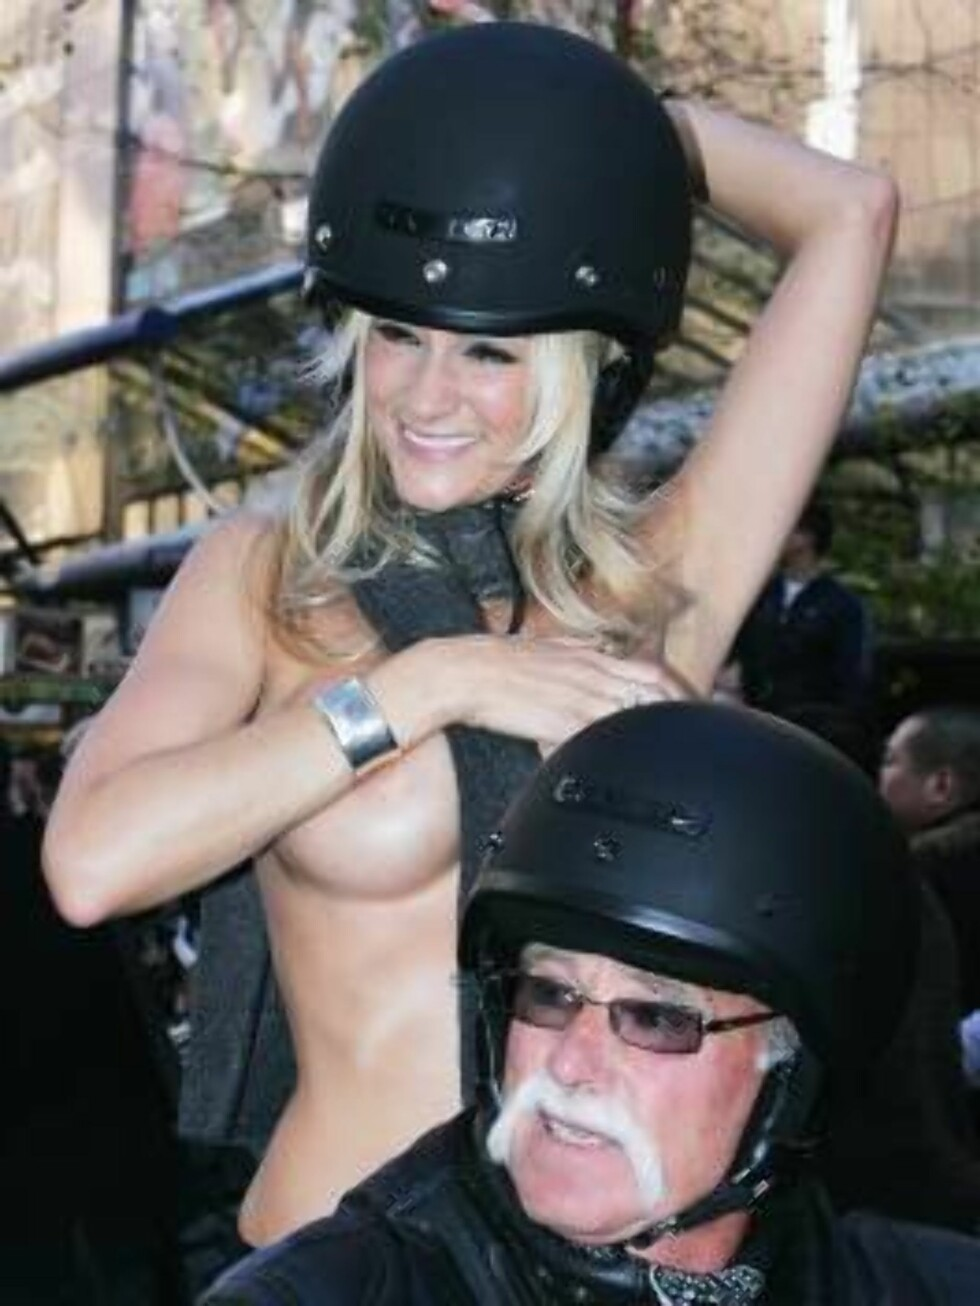 AUCKLAND, NEW ZEALAND - AUGUST 23:  A topless porn star rides on the back of a motorcycle down Queen Street during the Boobs on Bikes Parade August 23, 2006 in Auckland, New Zealand. The parade is to promote the Erotica Expo that starts in Auckland on Fri Foto: All Over Press